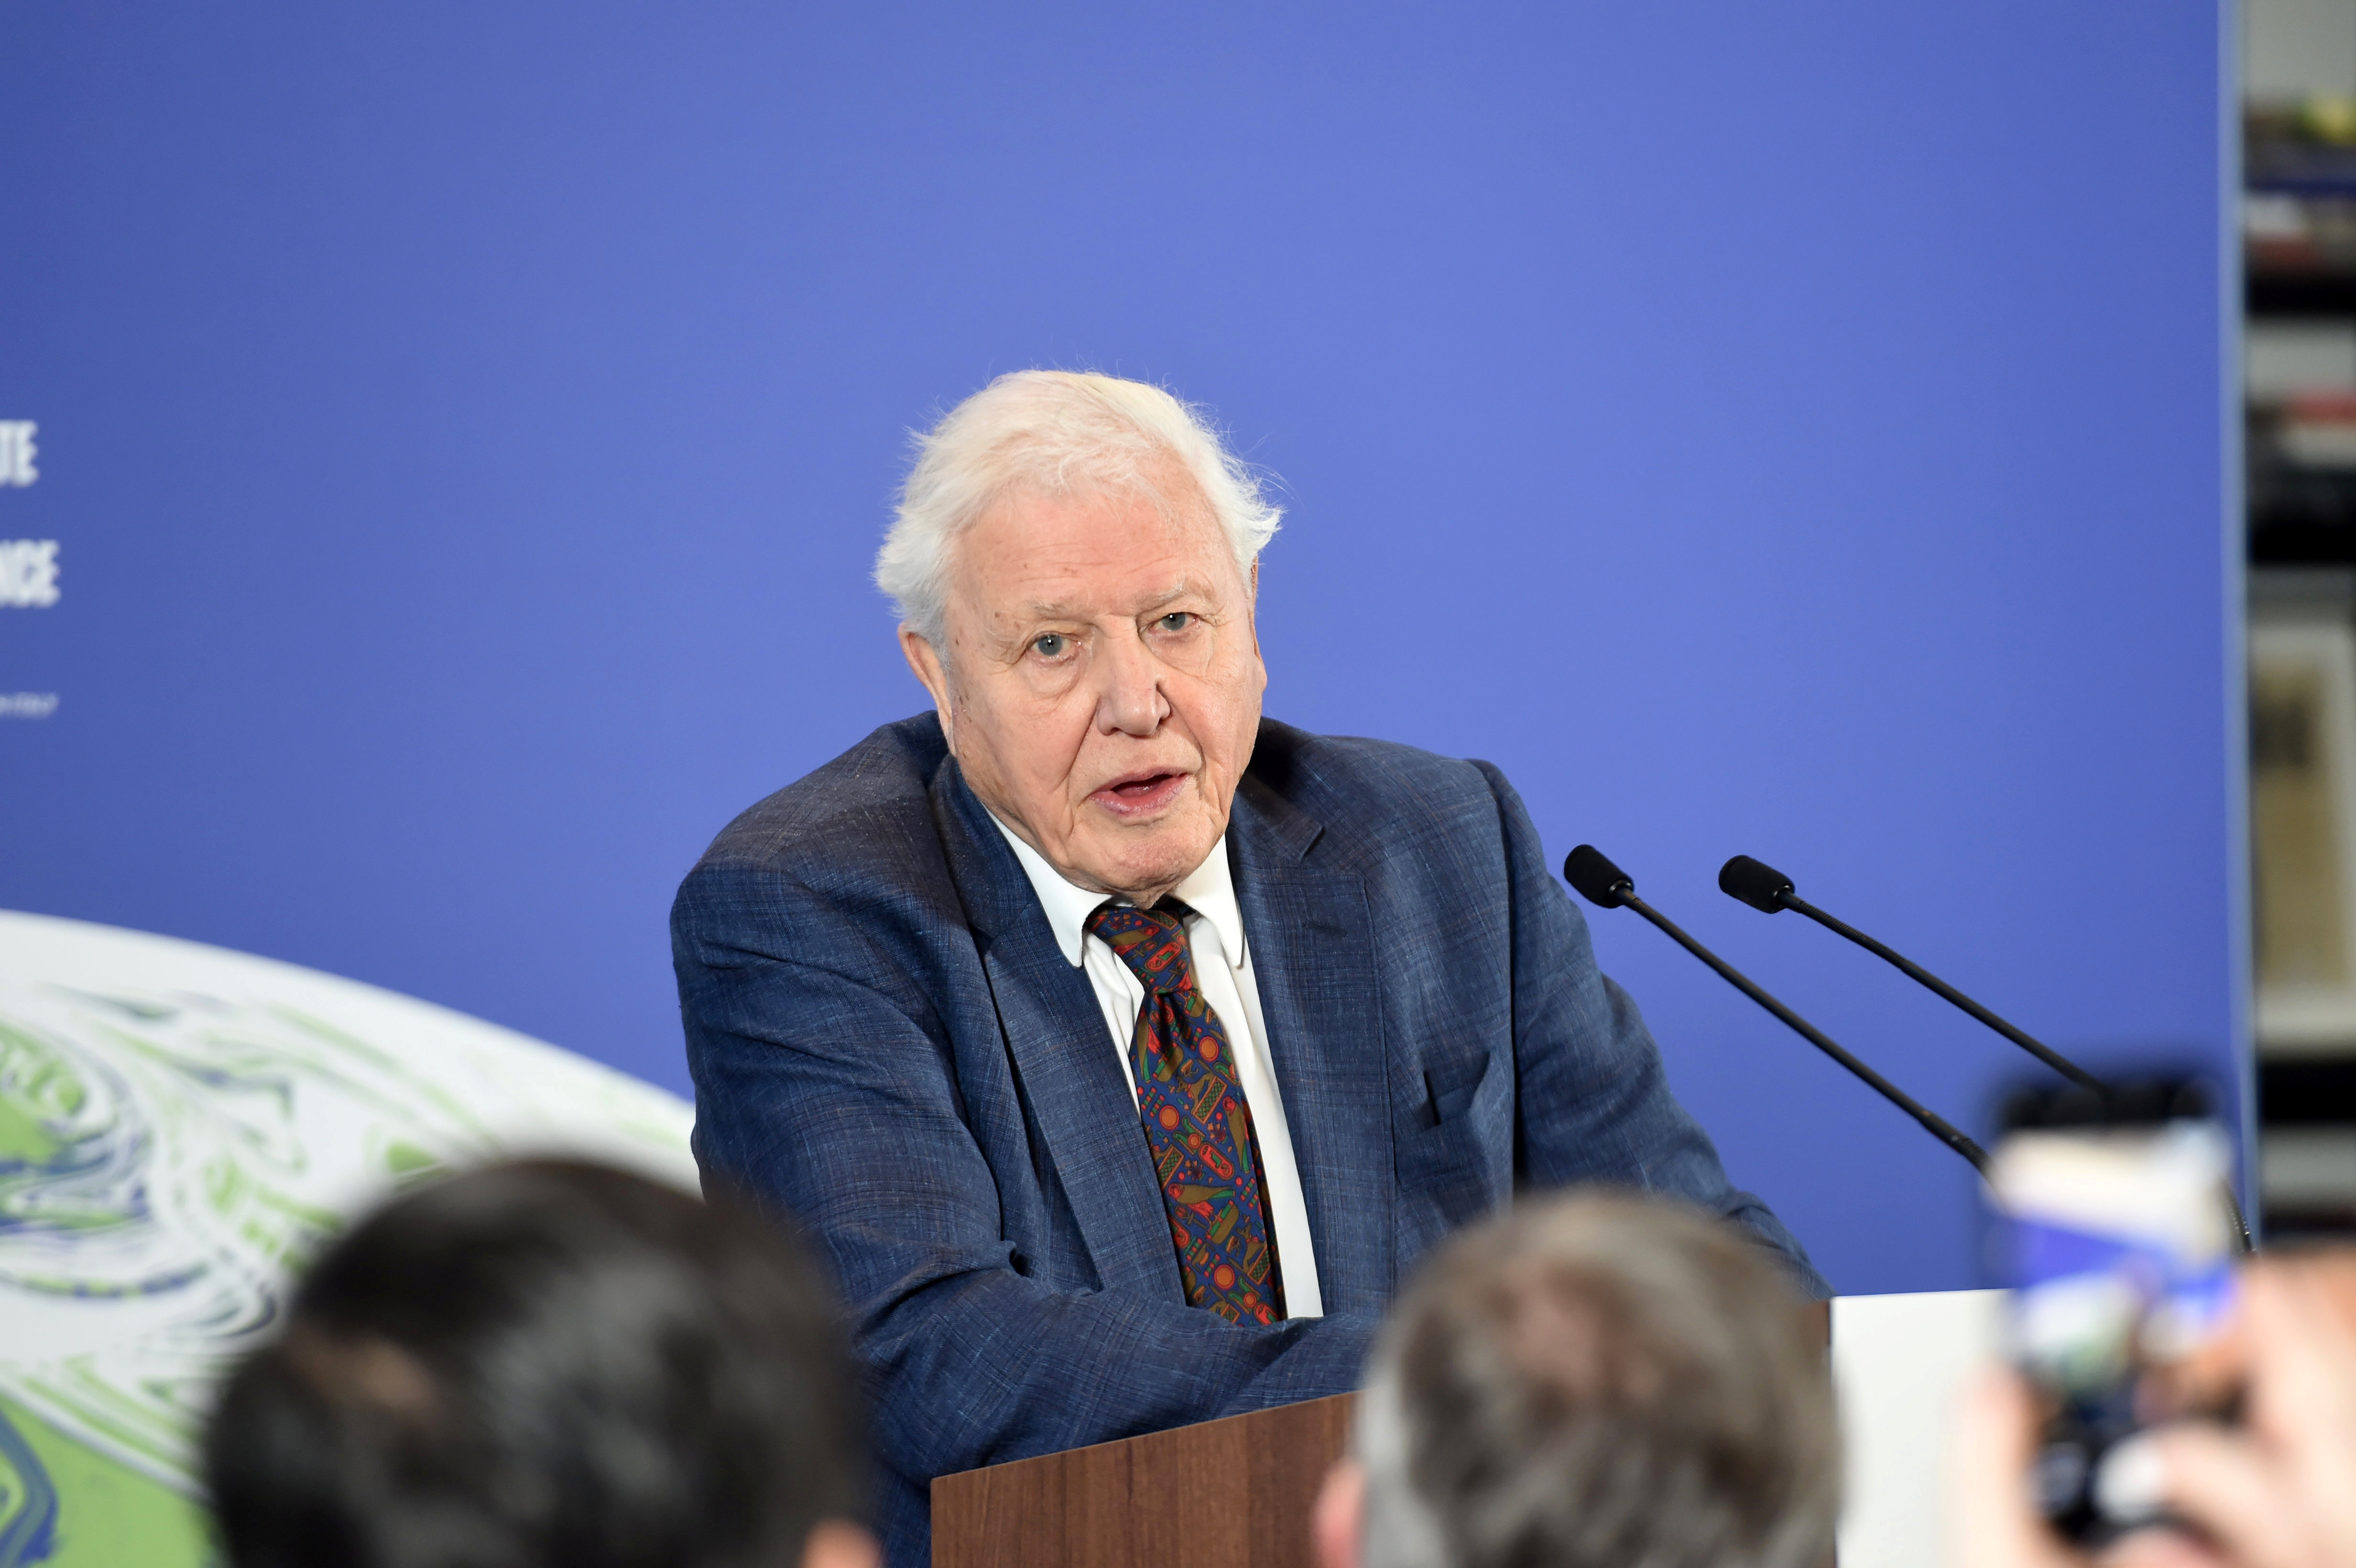 David Attenborough attends a conference about the COP26 UN Climate Summit, in London, Britain February 4, 2020. Jeremy Selwyn/Pool via REUTERS